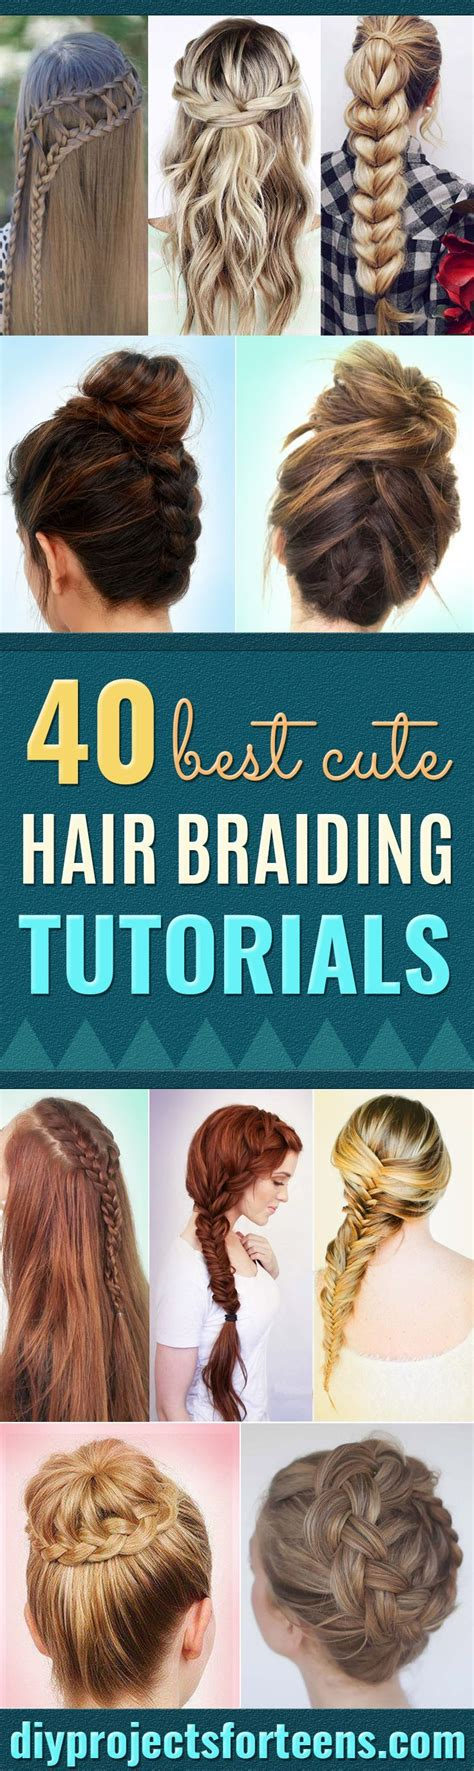 Cool Hairstyles For School Step By Step by Easy Step By Step Hairstyles For School Best Hair